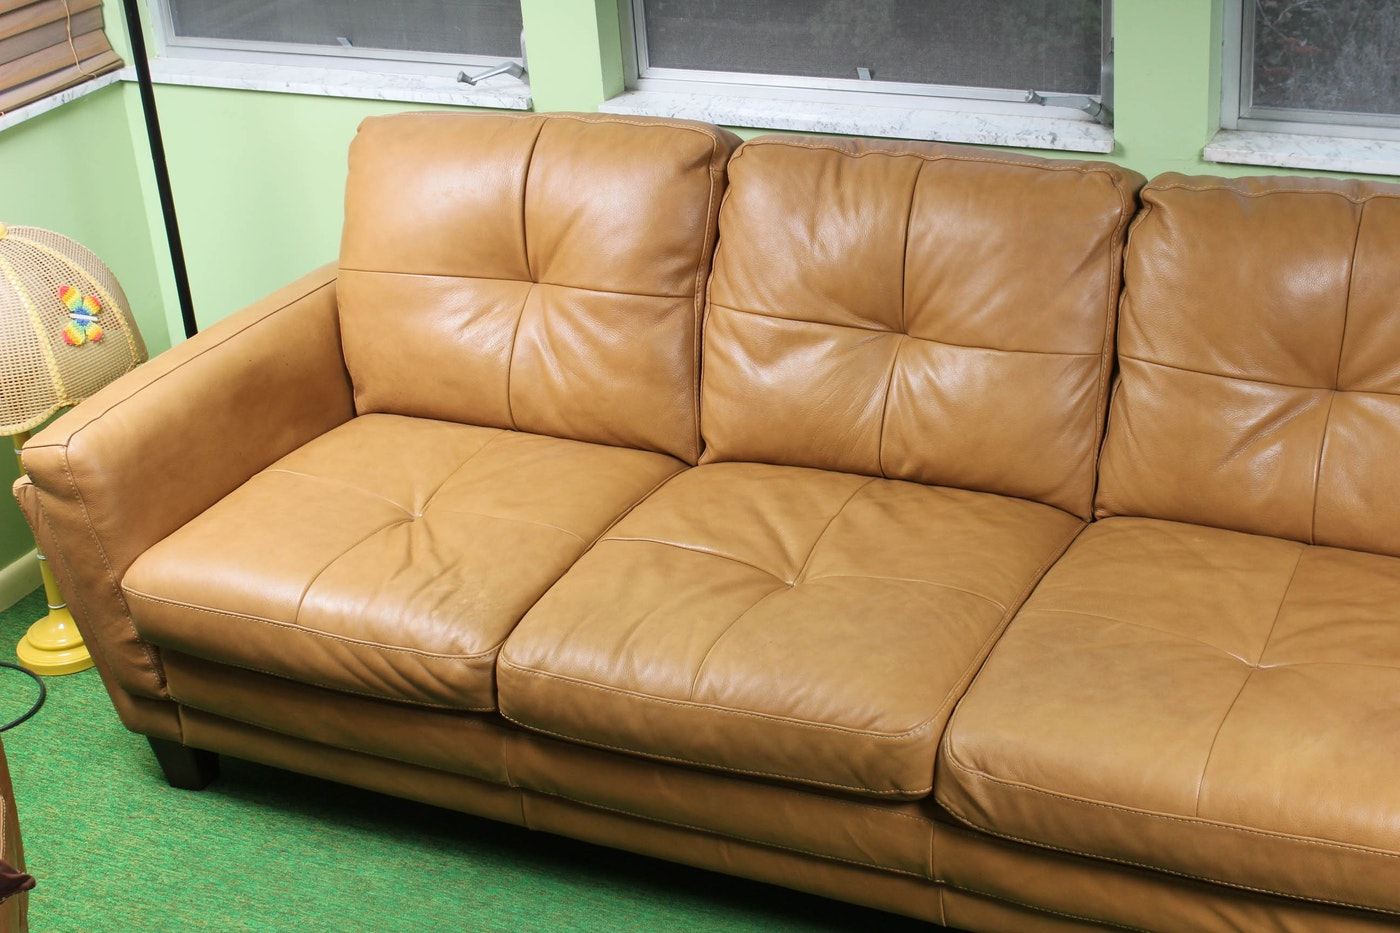 Italian Leather Sofa By Soft Line S.P.A.